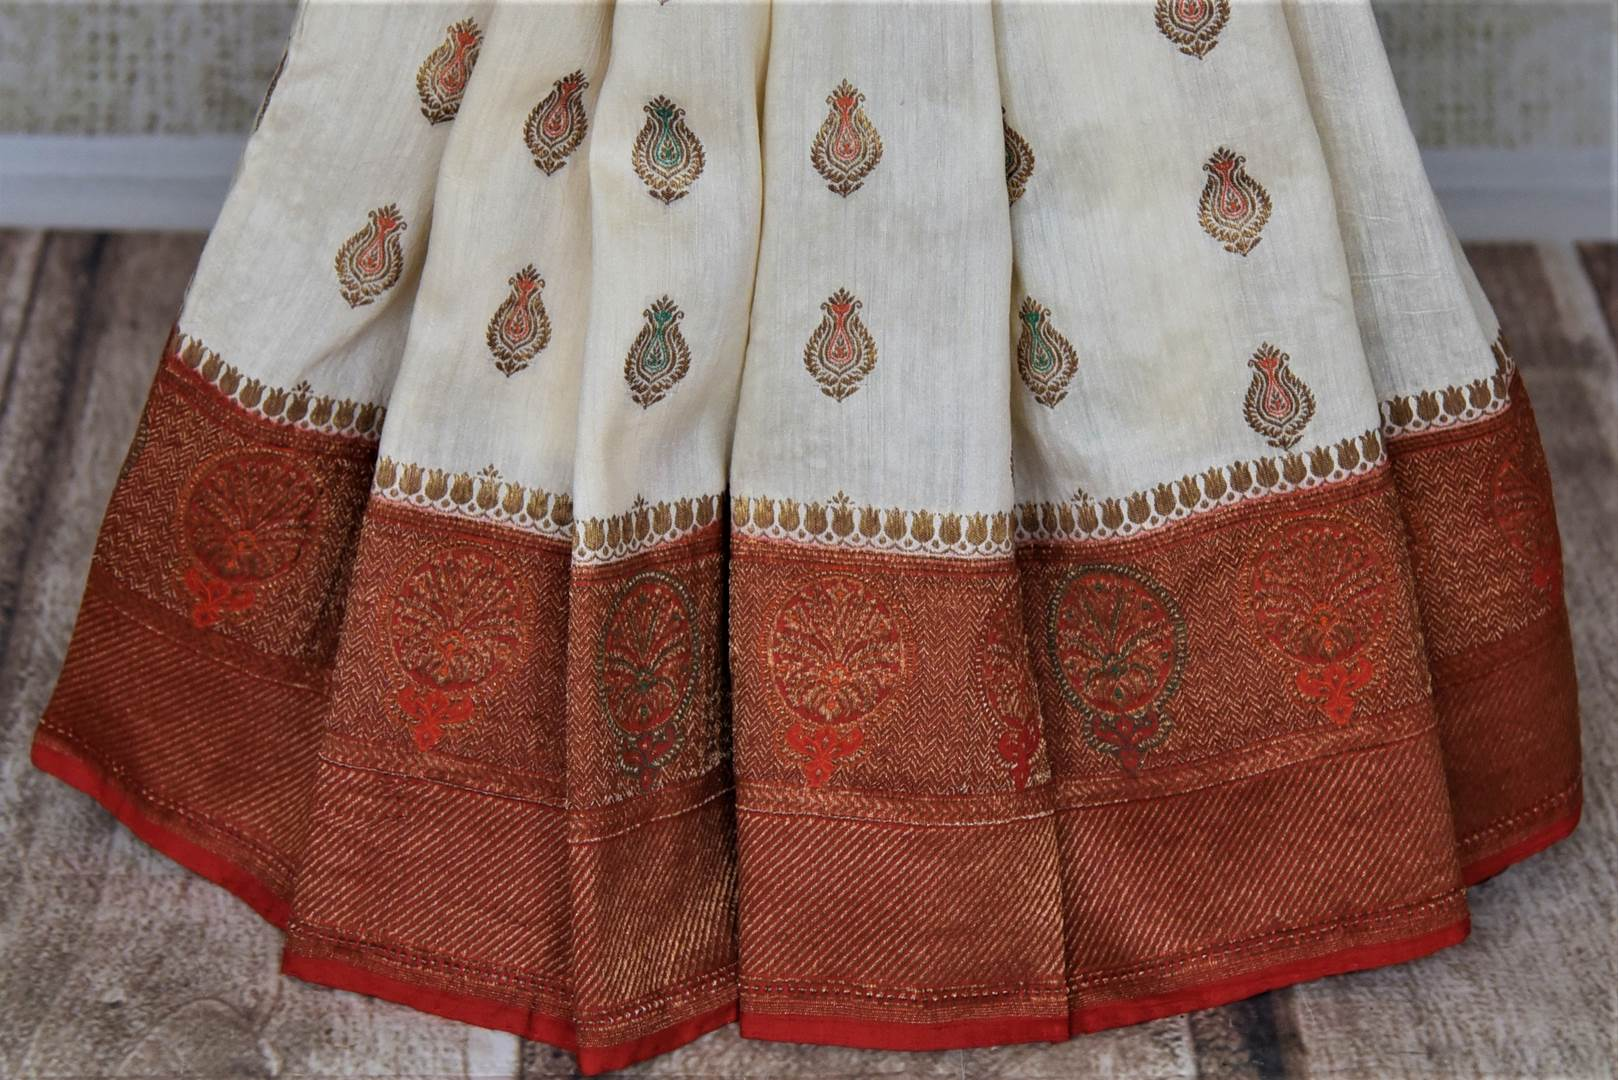 Buy lovely off-white muga Banarasi saree online in USA with red antique zari floral border. Keep your ethnic style updated with latest designer sarees, handloom sarees, pure silk sarees from Pure Elegance Indian fashion store in USA.-pleats